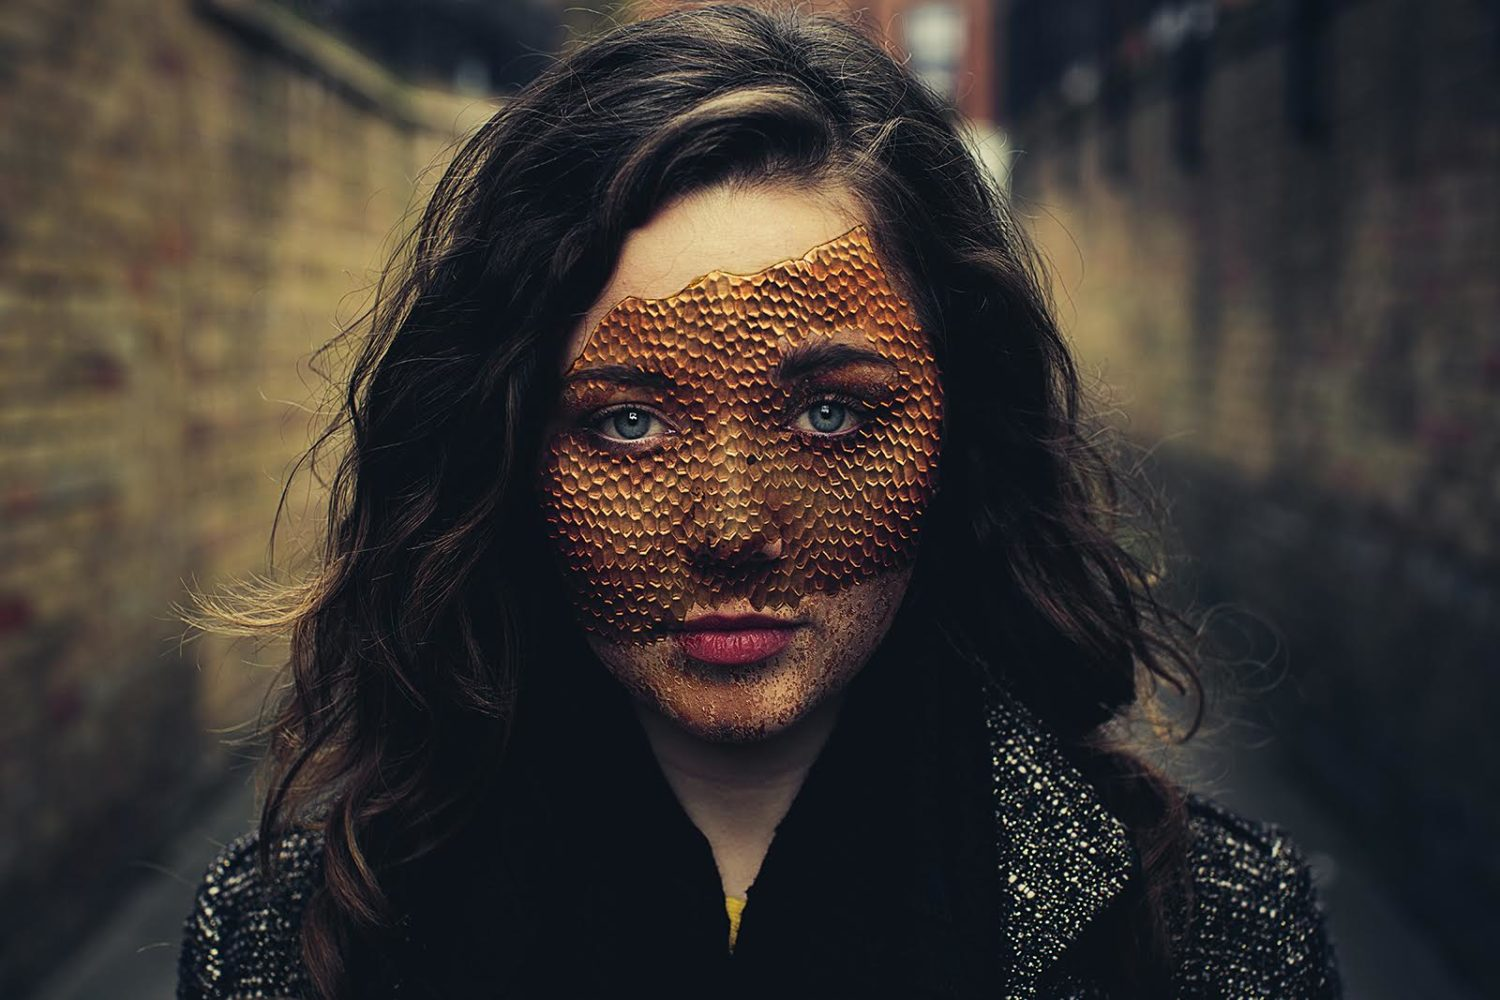 Photographer Creates Surreal Portraits To Raise Awareness For An Important Issue